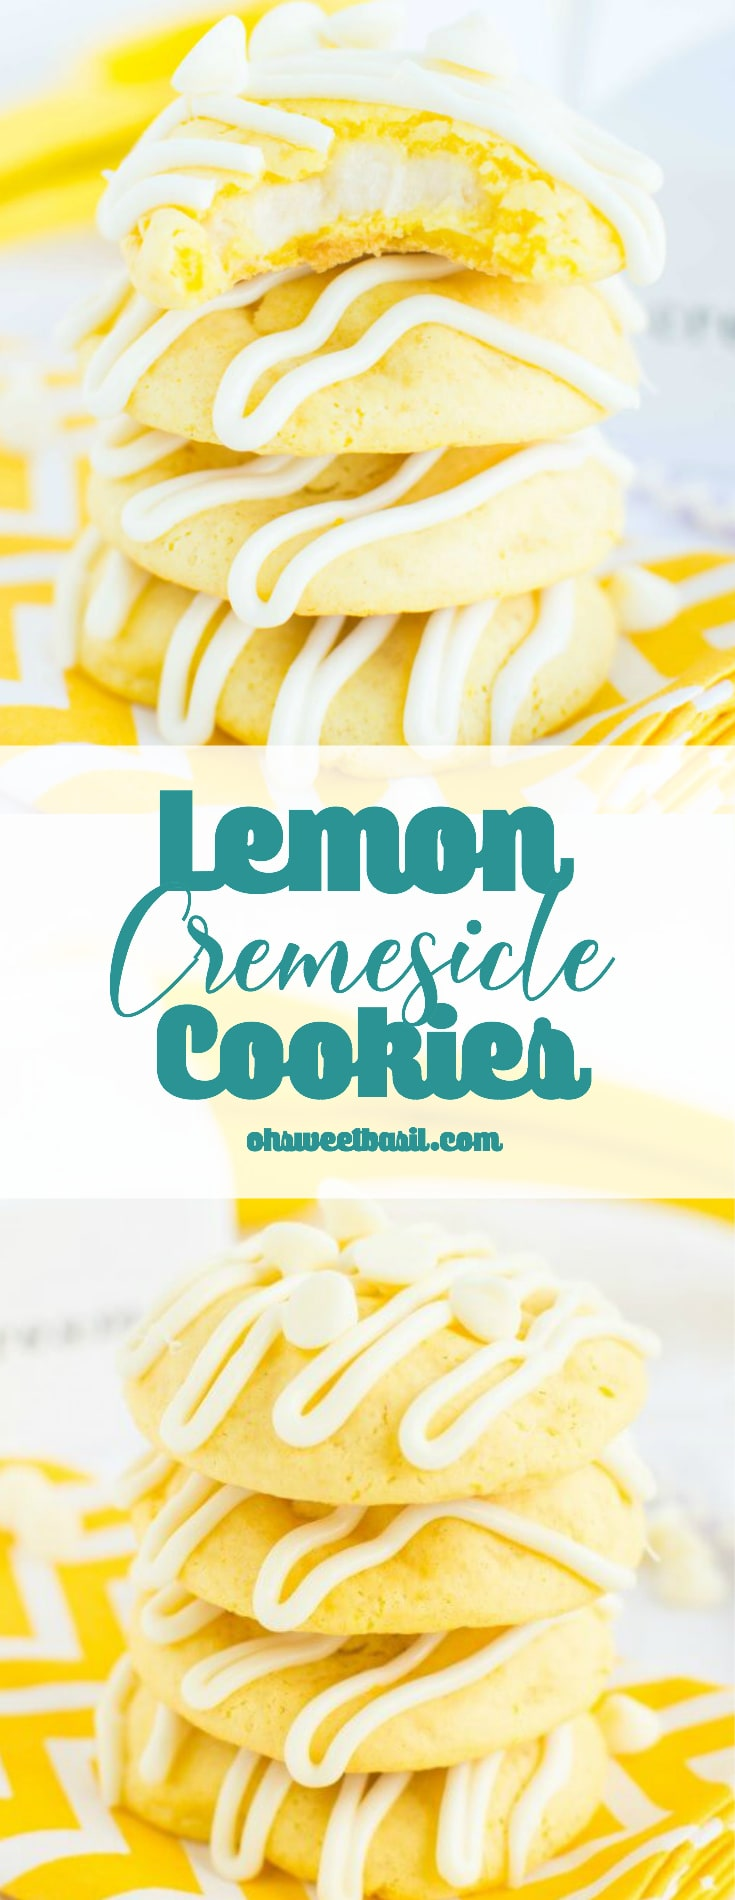 A stack of Lemon Cremesicle cookies with a cream cheese filling drizzled with white chocolate